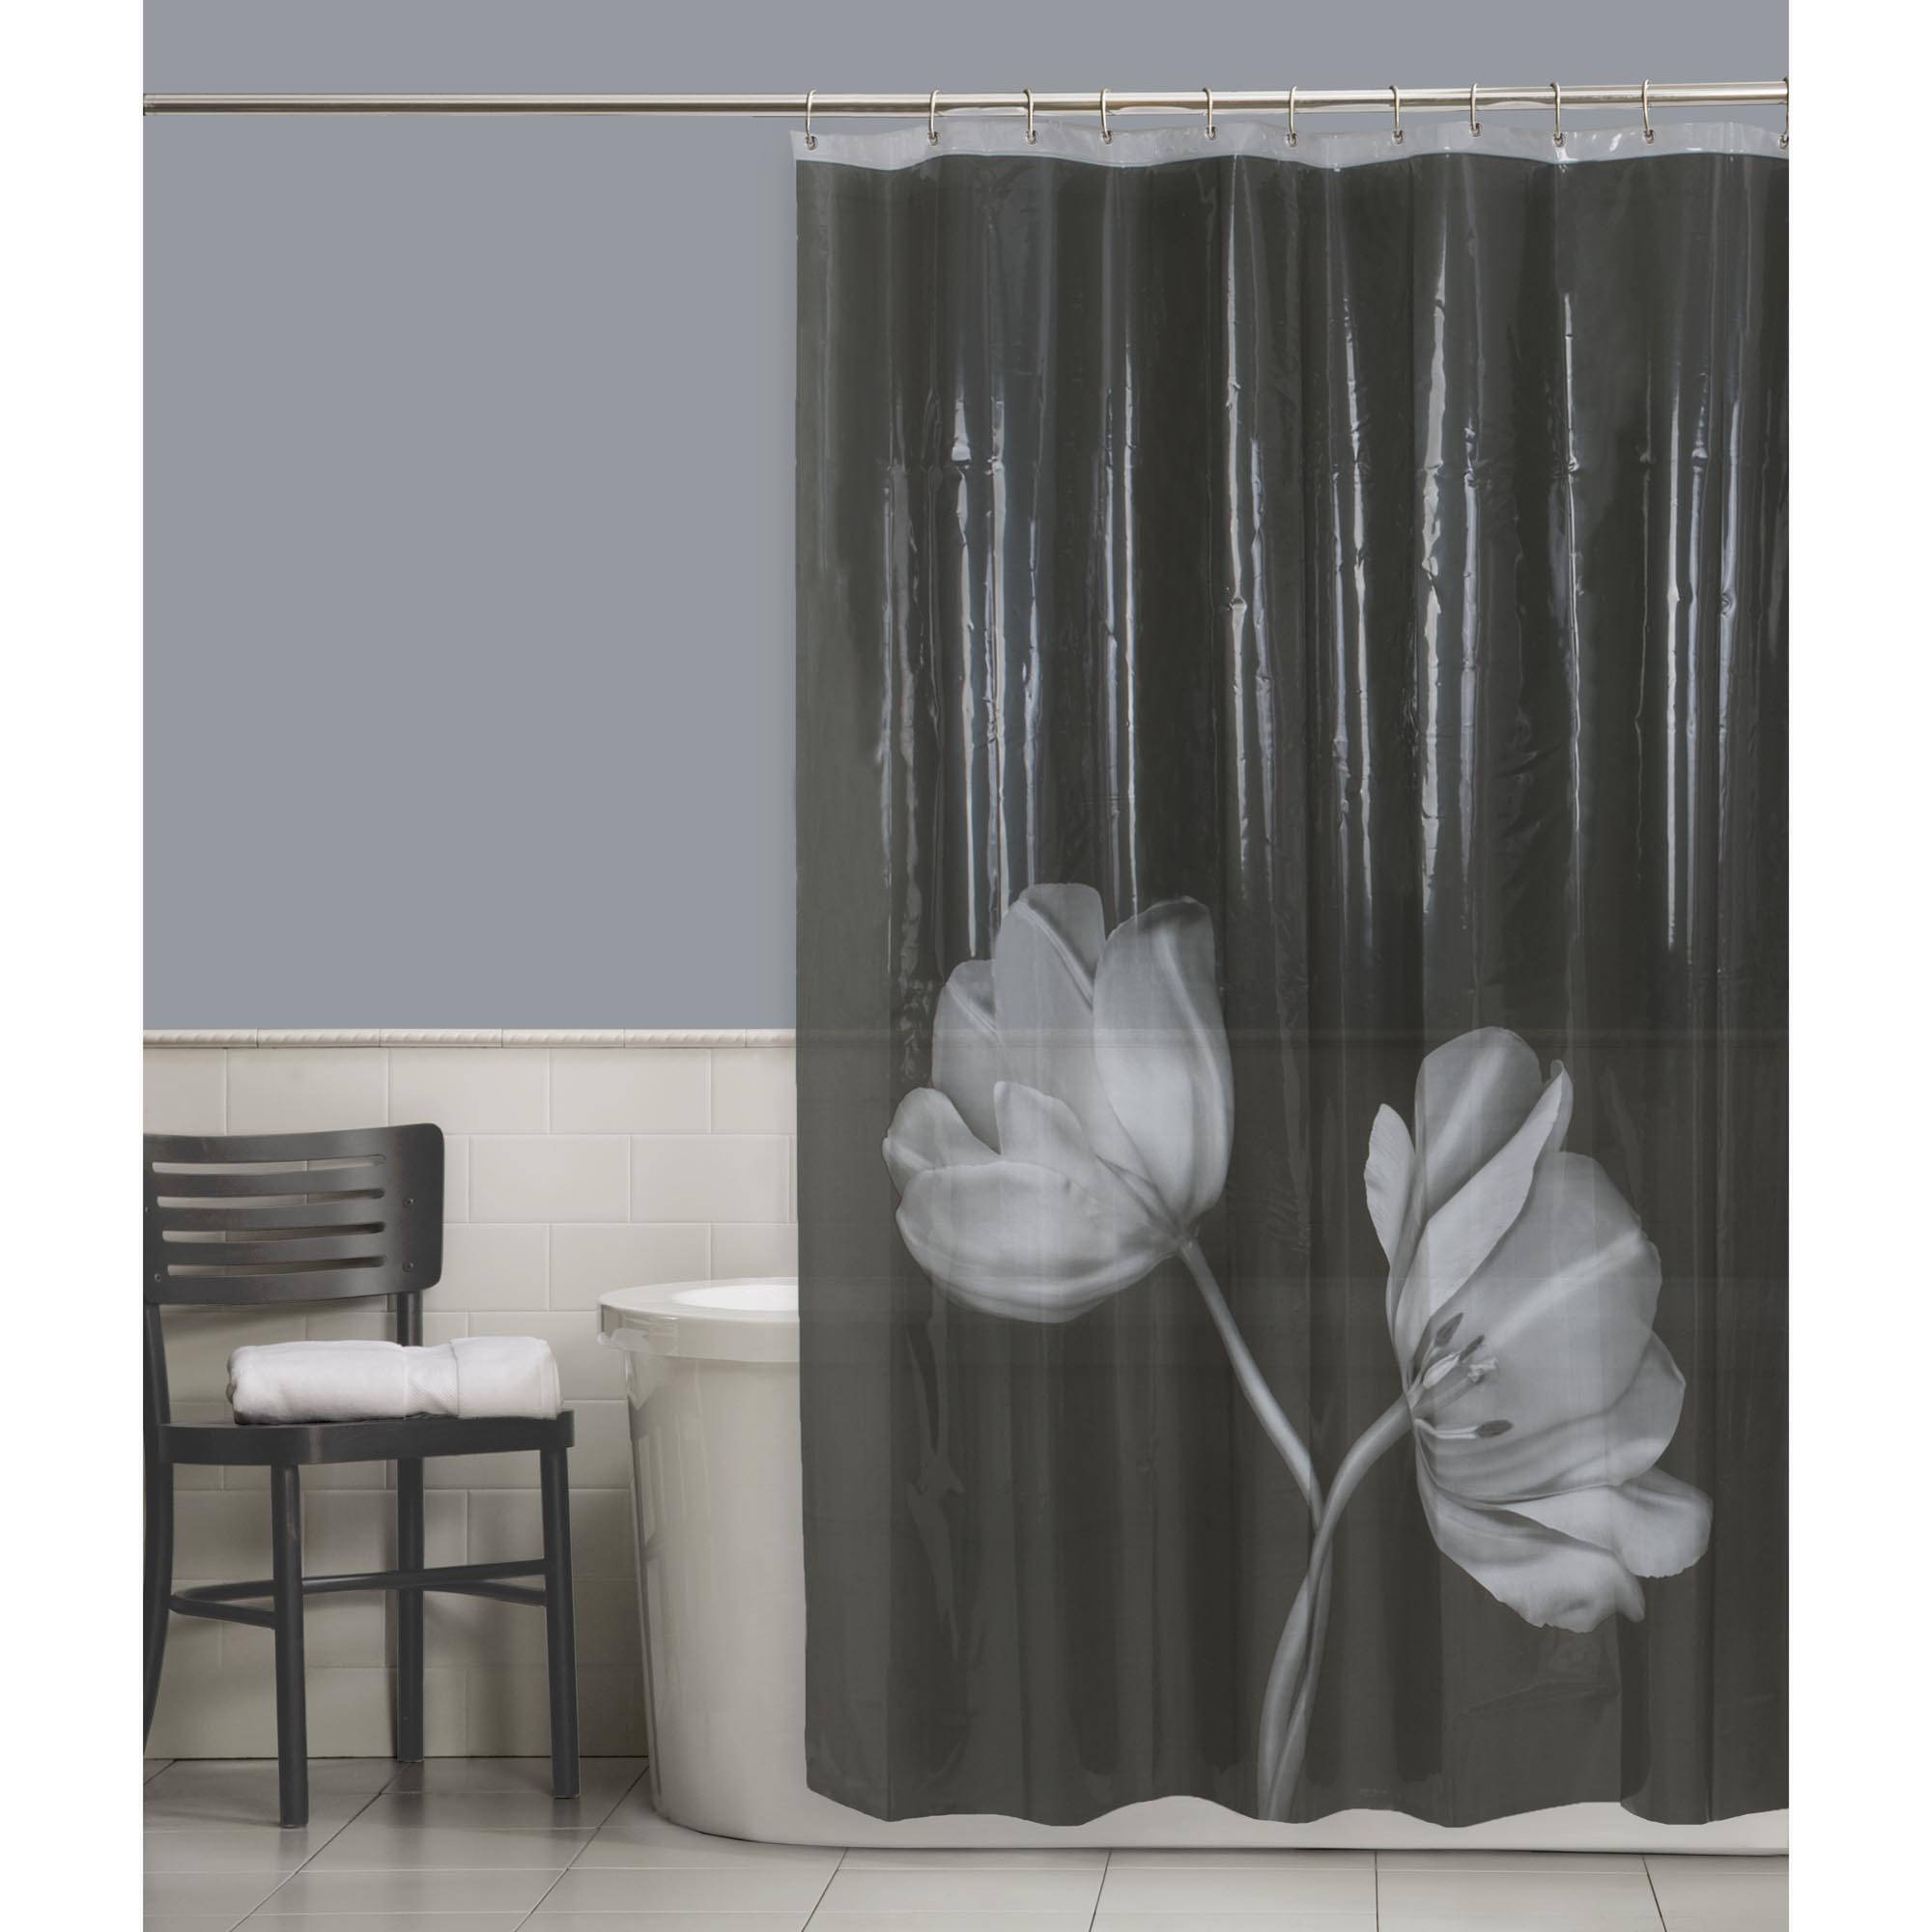 Maytex Tulip PEVA Vinyl Shower Curtain, Black